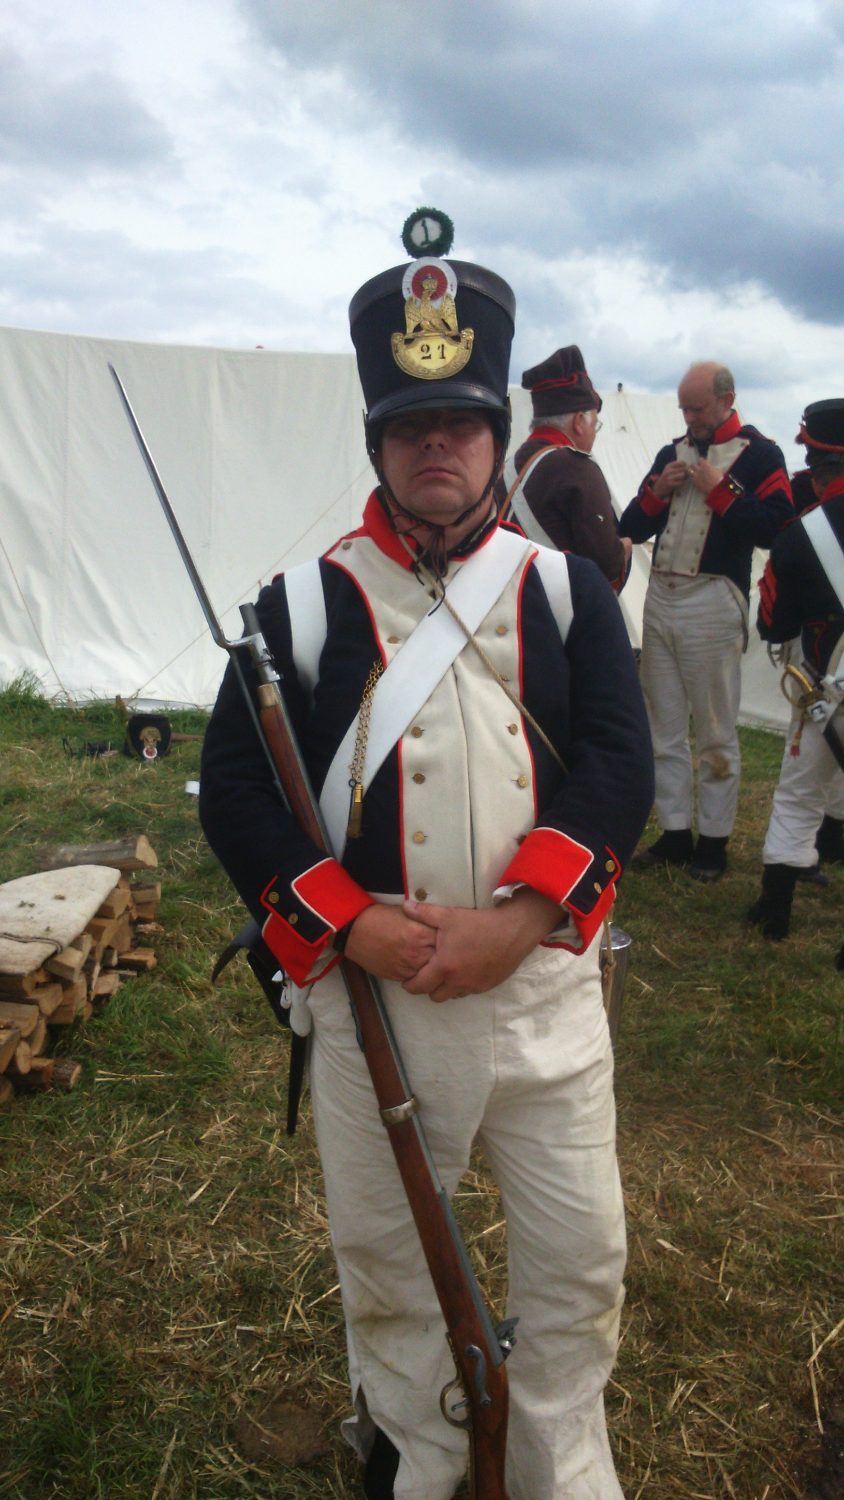 French Napoleonic soldier